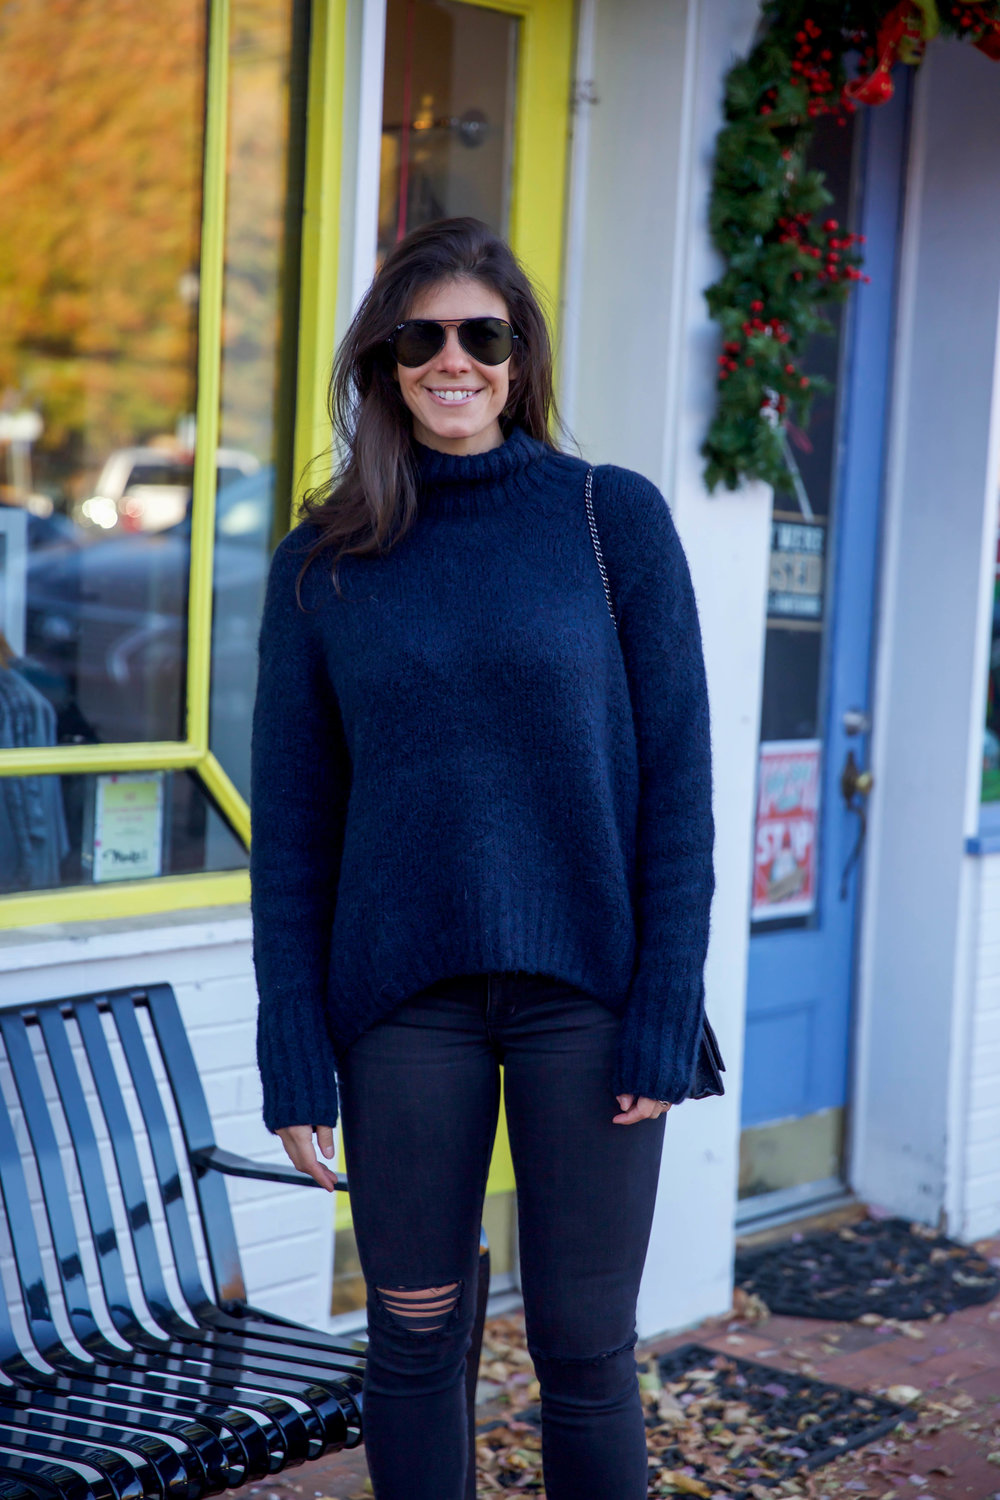 lauren-schwaiger-style-blog-navy-turtleneck-sweater.jpg